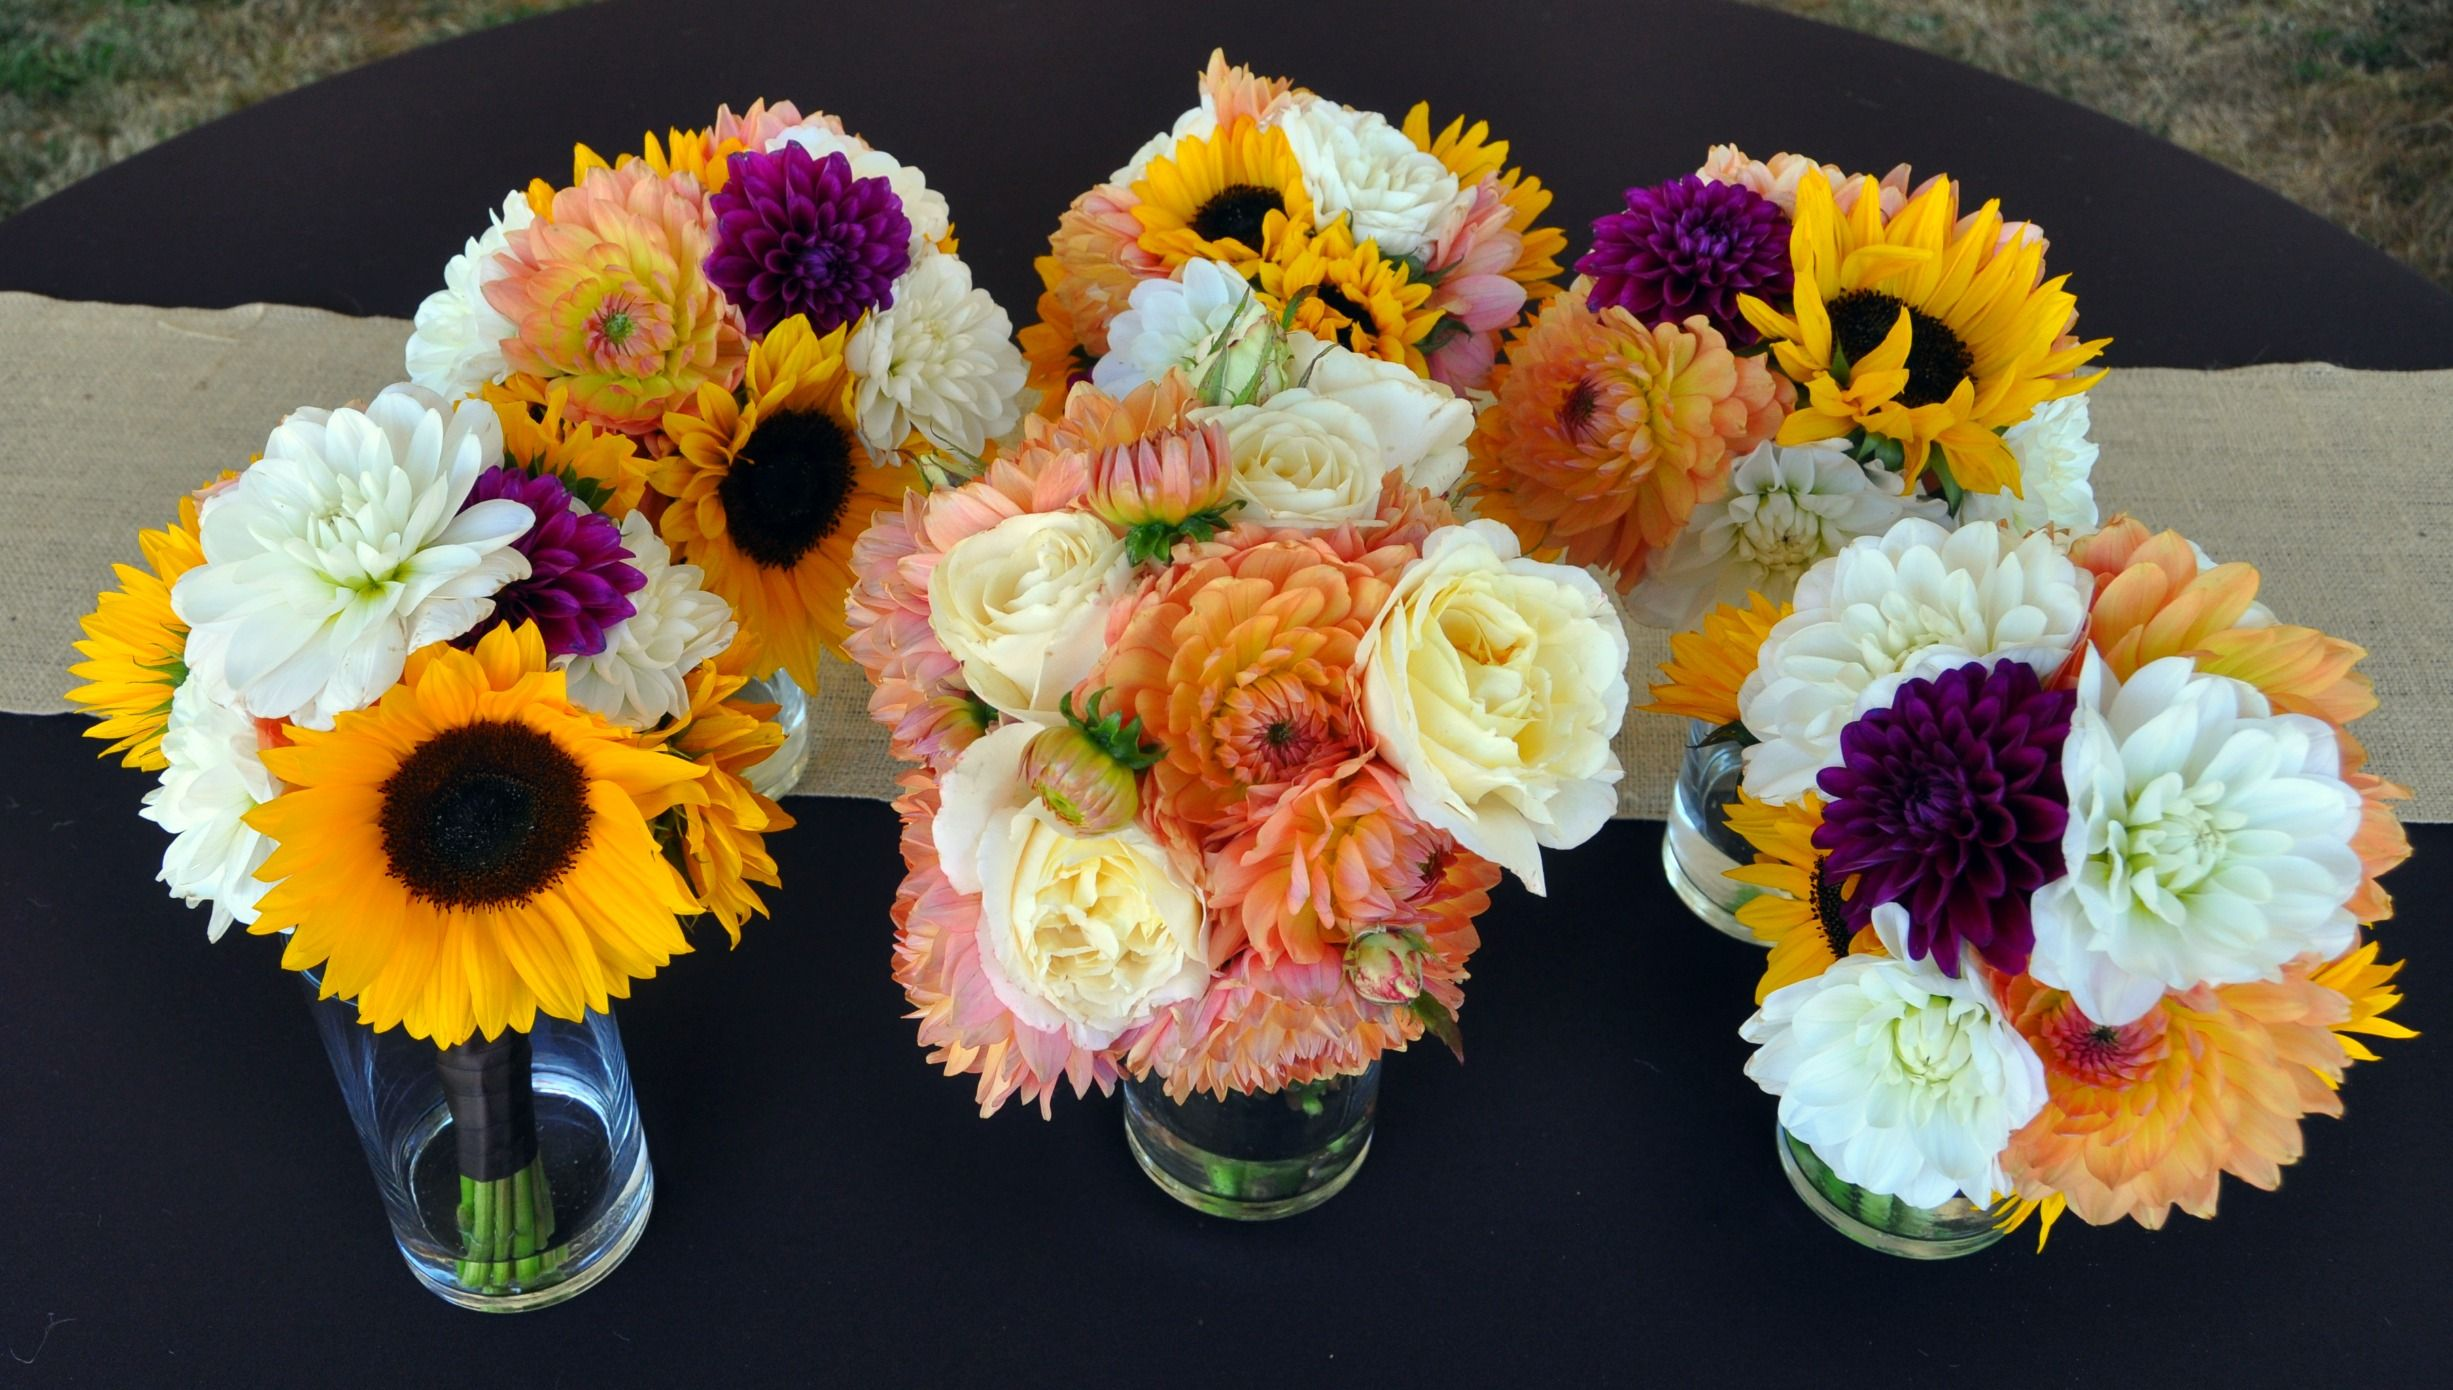 Love Garden Roses: Dahlias, Sunflower, And Peonies/garden Roses! Love The